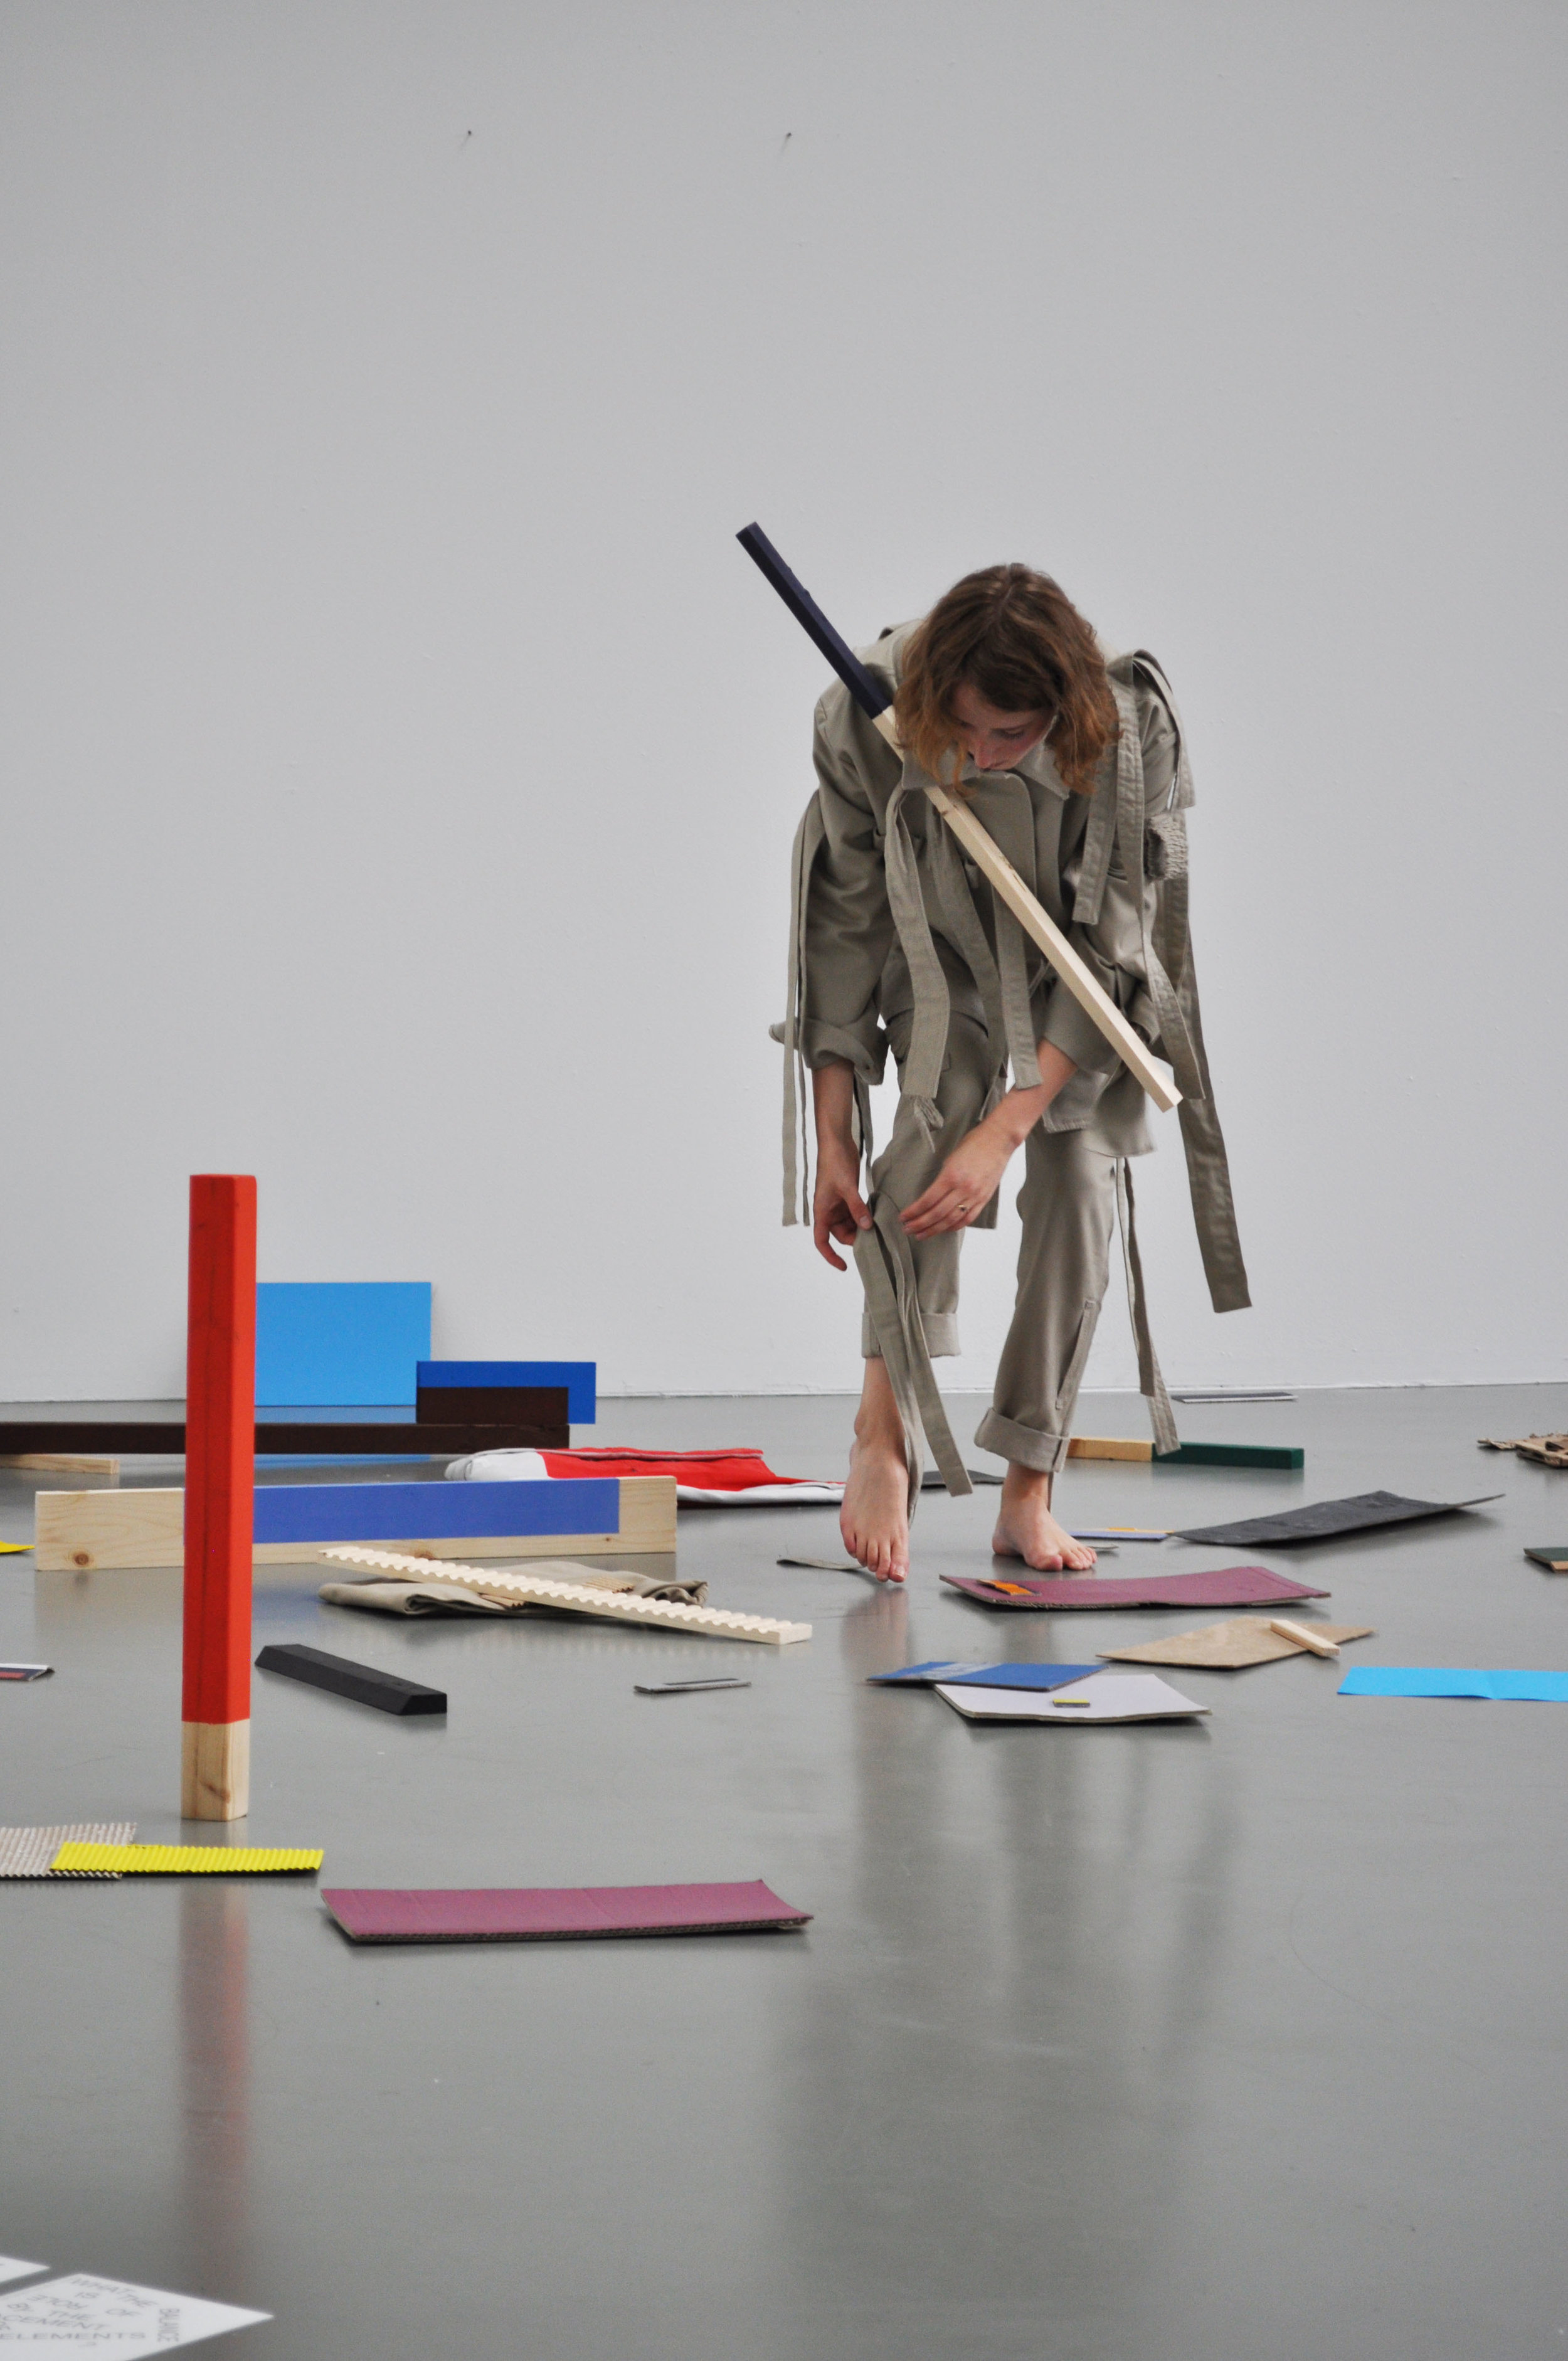 Performance 'How to deal with the restrictions of a system?', 2017 / Fotografie: Thijs de Goede